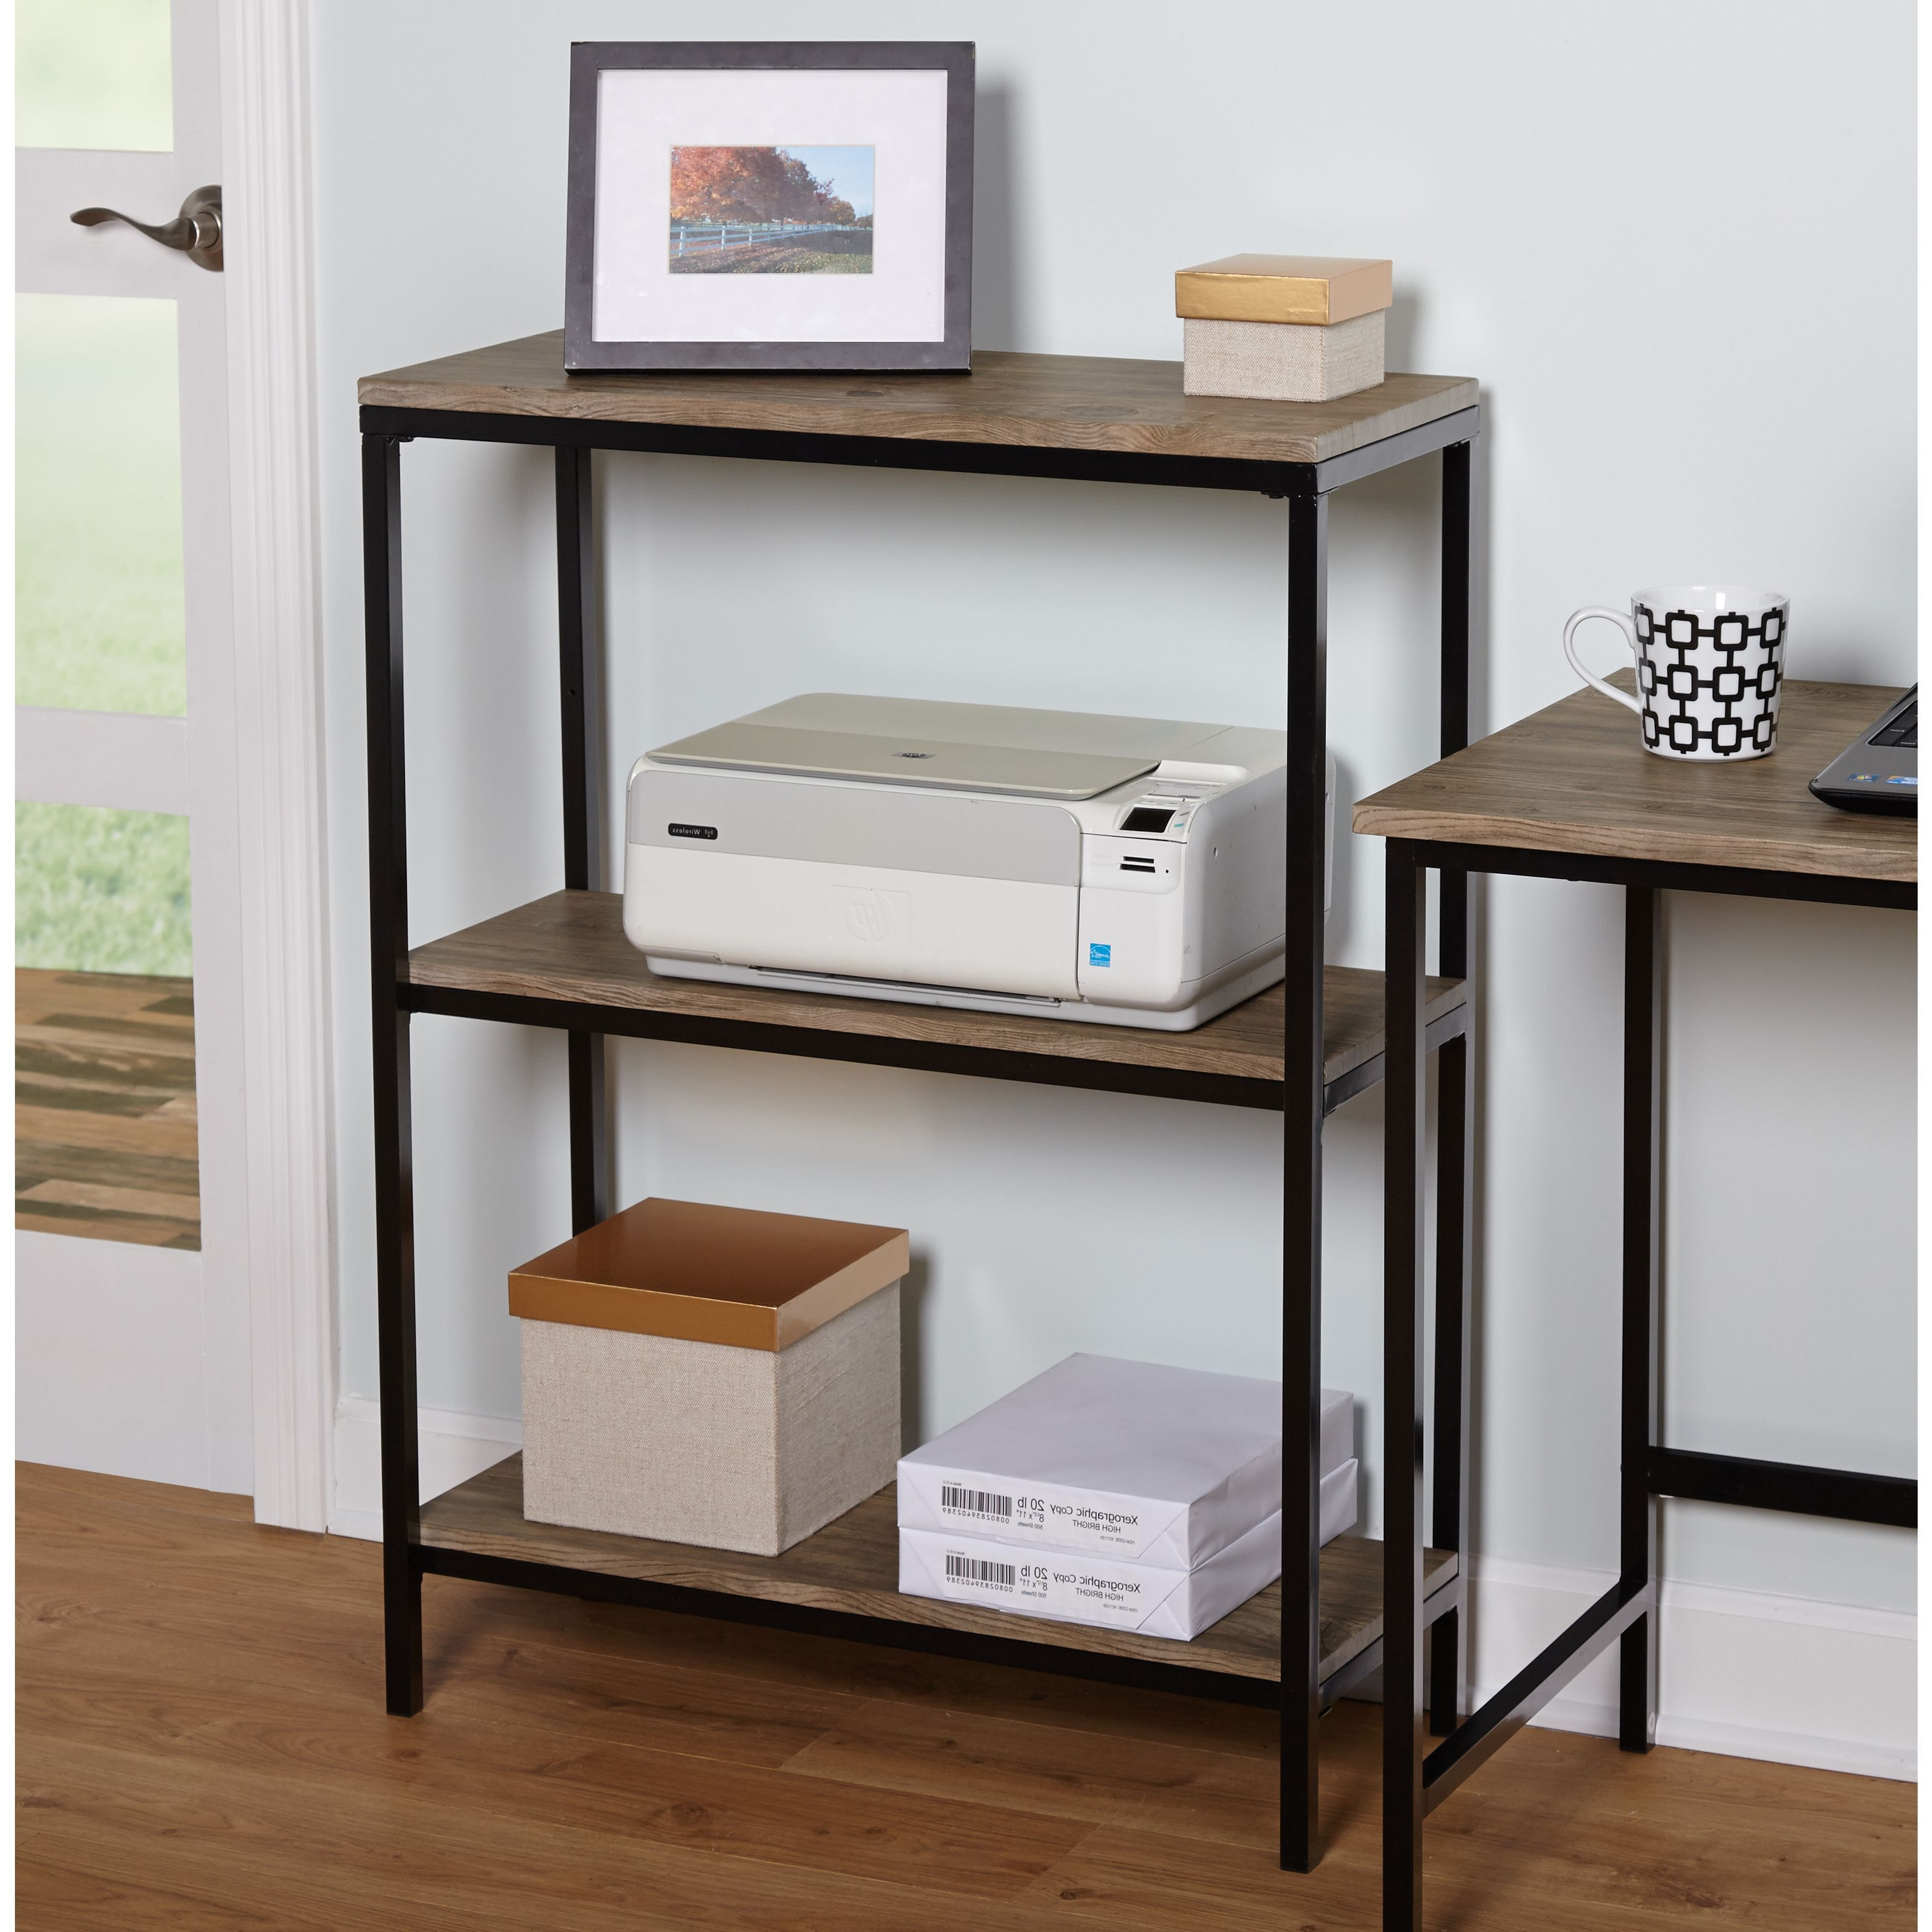 The Piazza 3 Tier Bookshelf From Simple Living Features A Bold Black For Mix Patina Metal Frame Console Tables (View 19 of 20)